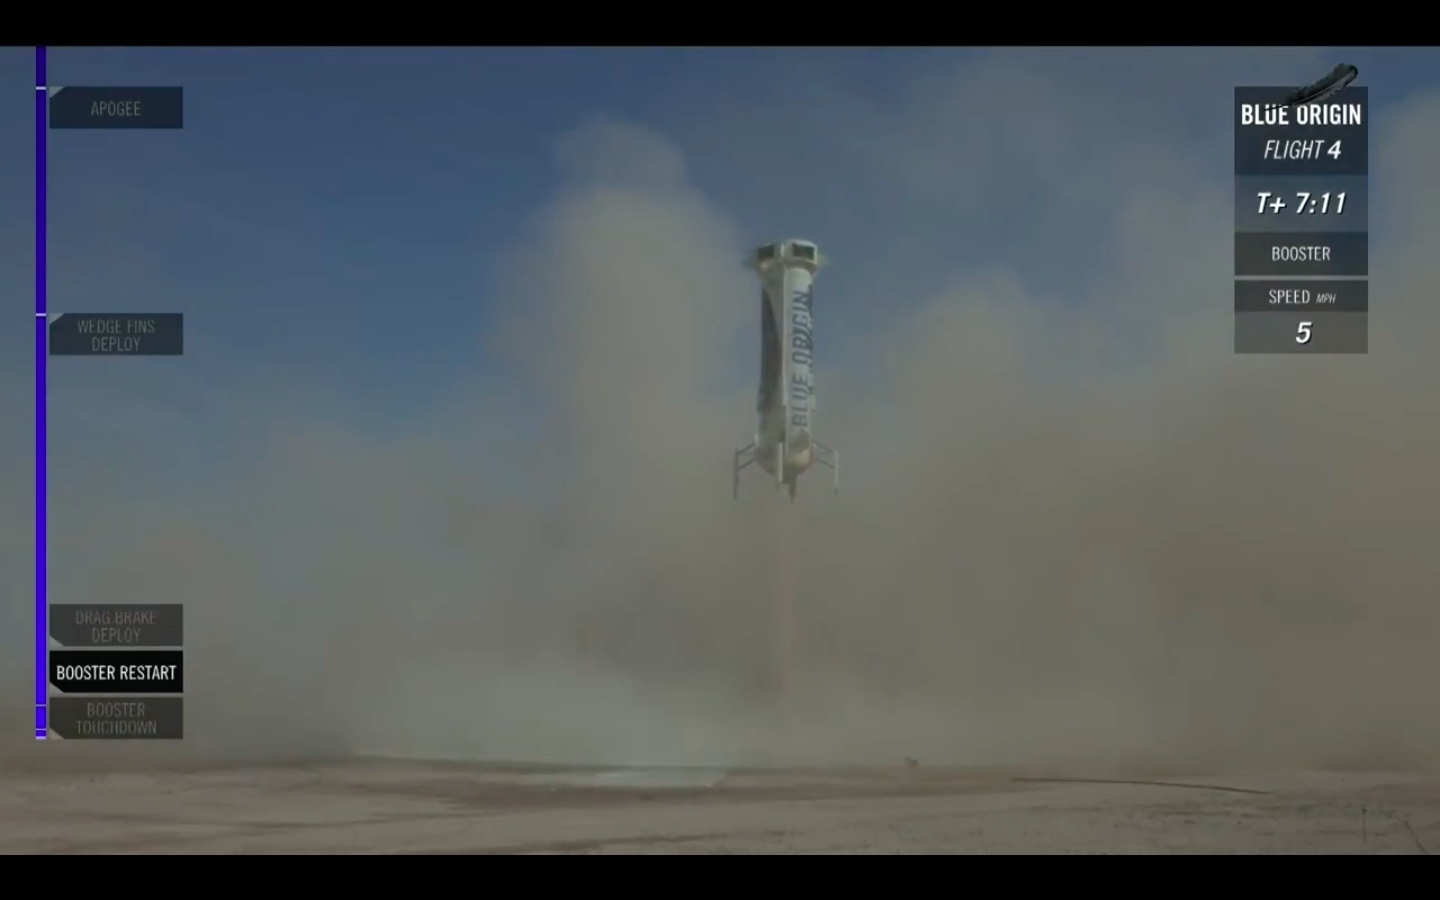 The New Shepard booster just before landing in West Texas on Sunday. Credit: Blue Origin